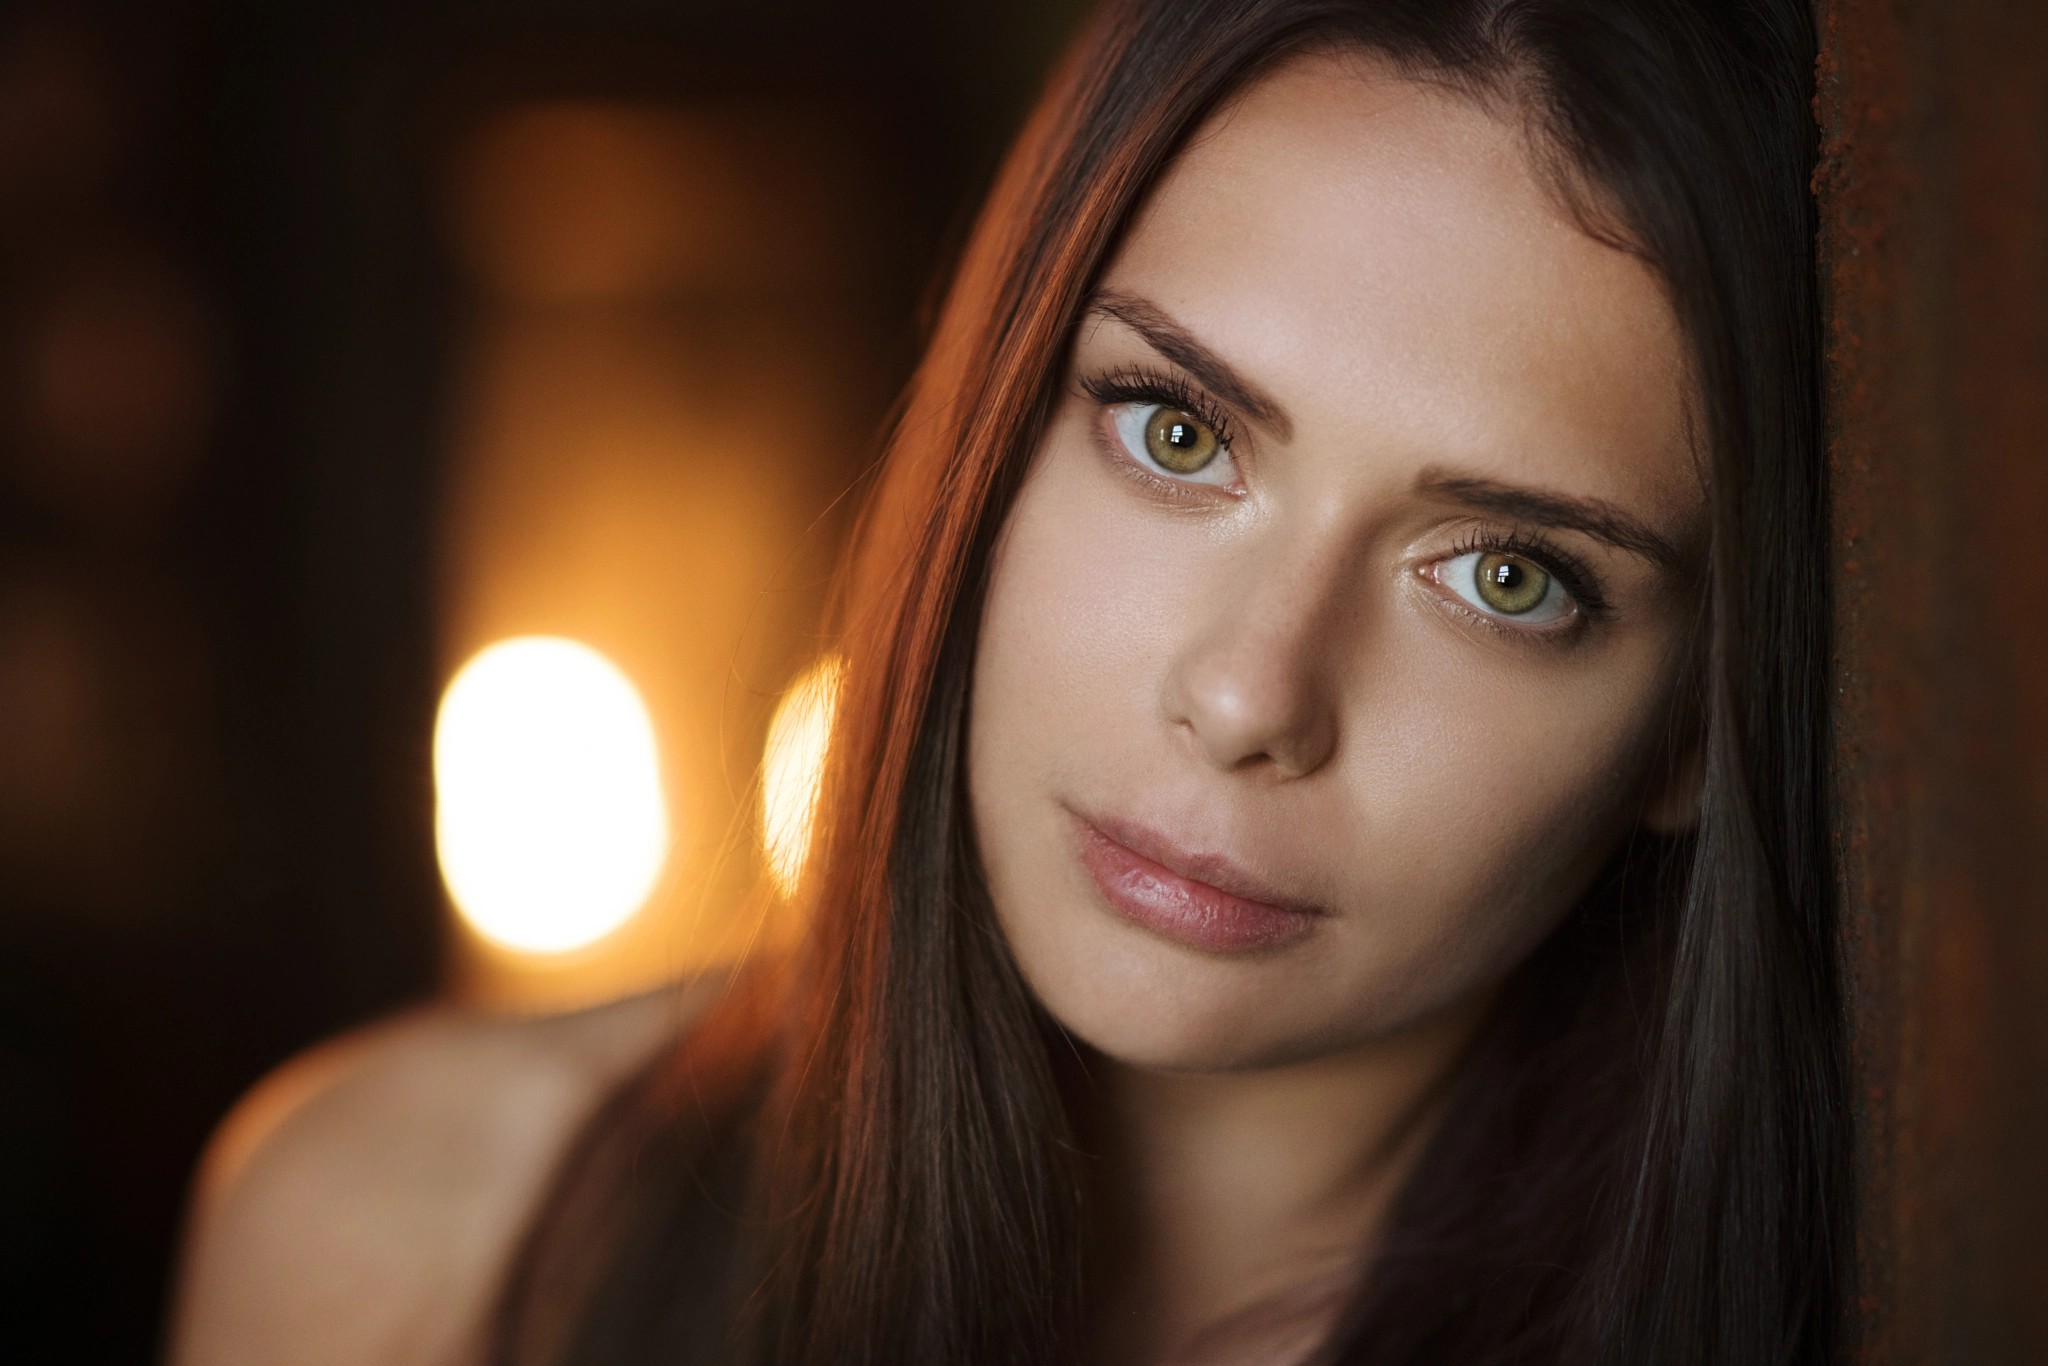 People 2048x1366 brunette green eyes portrait looking at viewer women face women indoors model depth of field blurred lights Maxim Maximov long hair